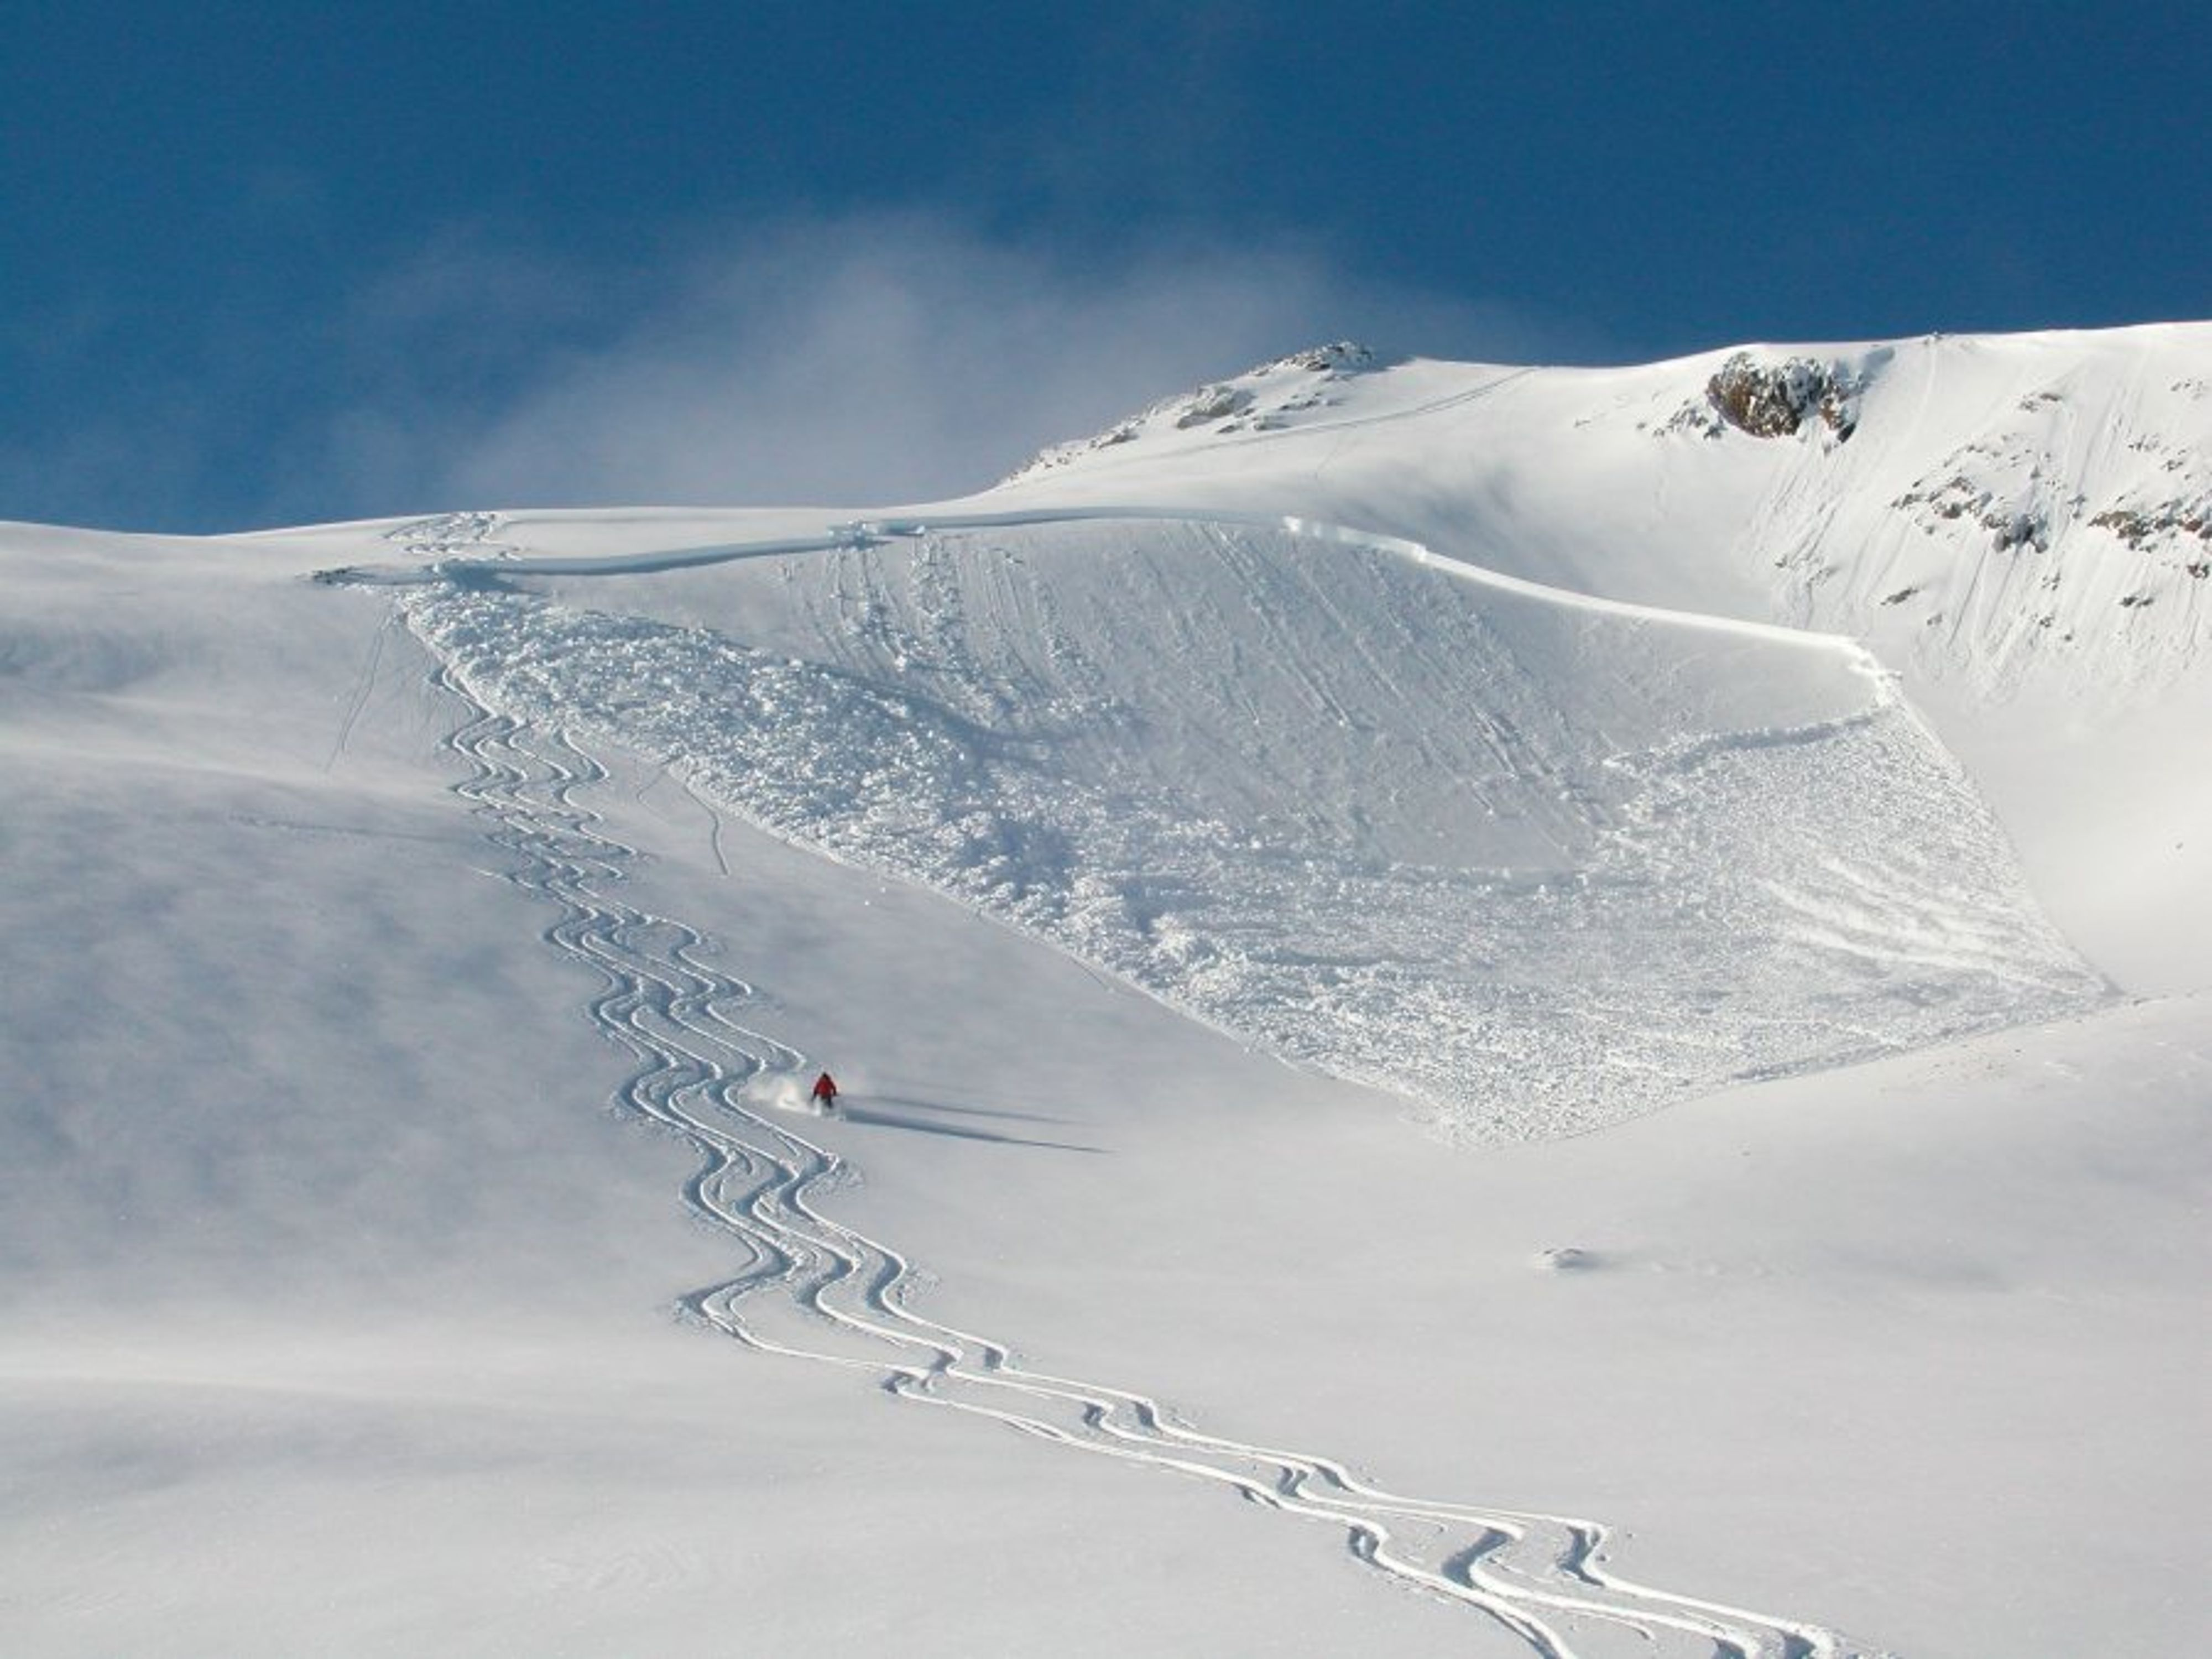 This avalanche was triggered by a skier at the top of a convex roll, where the slope rapidly steepened. Fortunately, no one was caught.